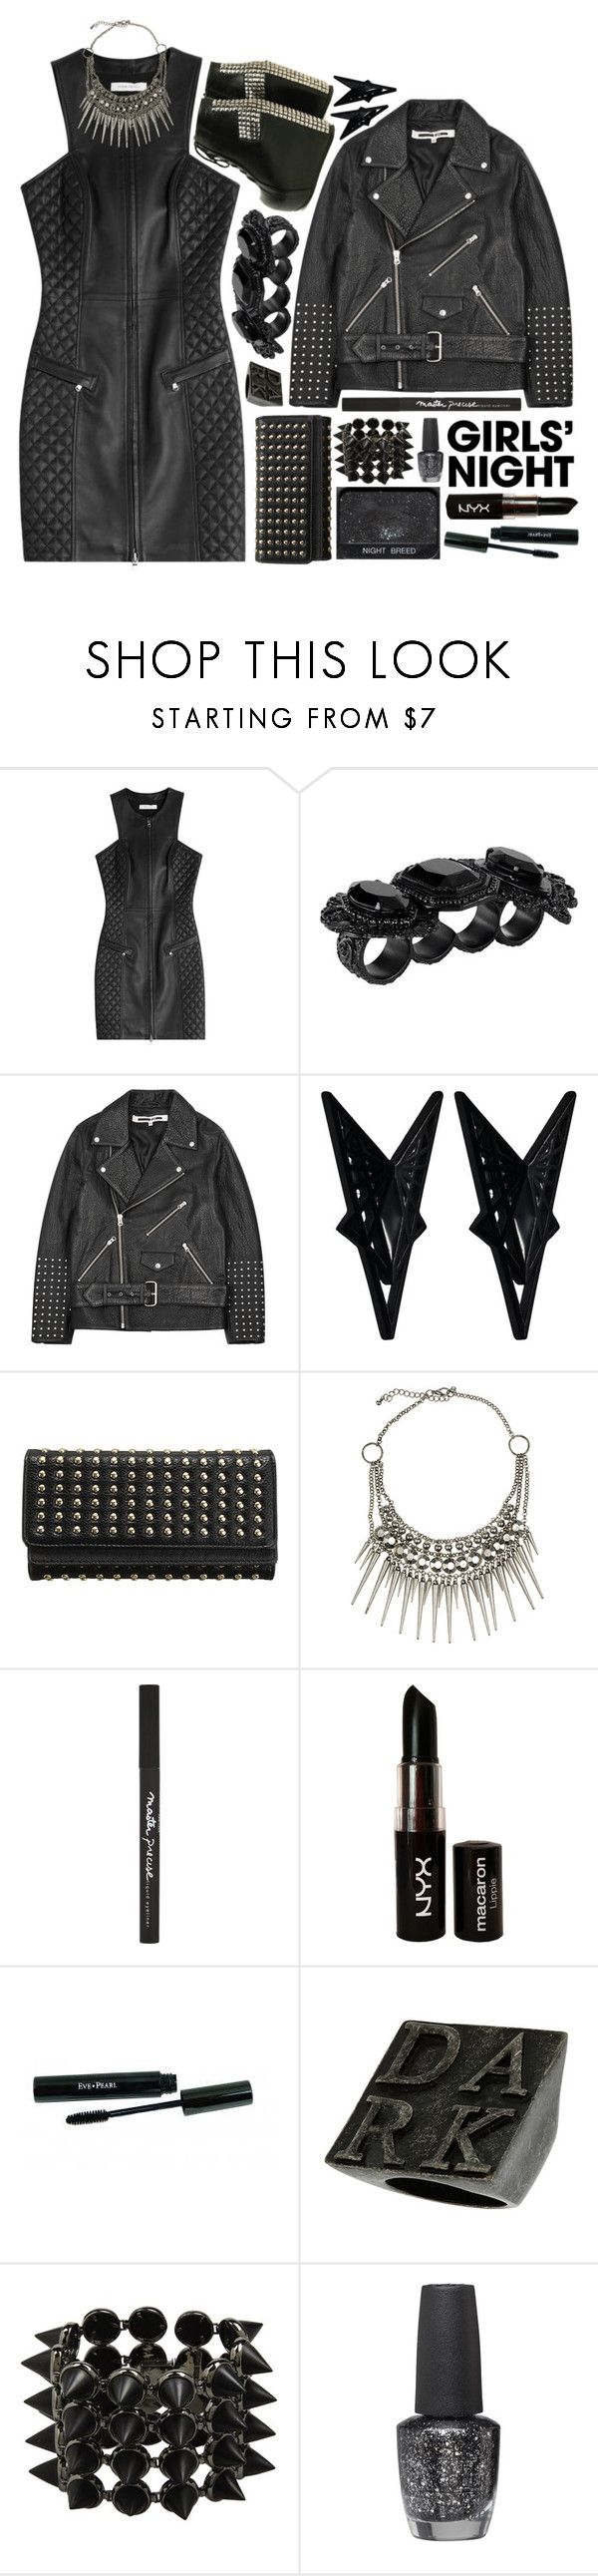 """""""1482"""" by anastaziah2014 ❤ liked on Polyvore featuring Pierre Balmain, Dsquared2, McQ by Alexander McQueen, Eddie Borgo, NARS Cosmetics, Club Manhattan, Maybelline, NYX, OPI and girlsnight"""